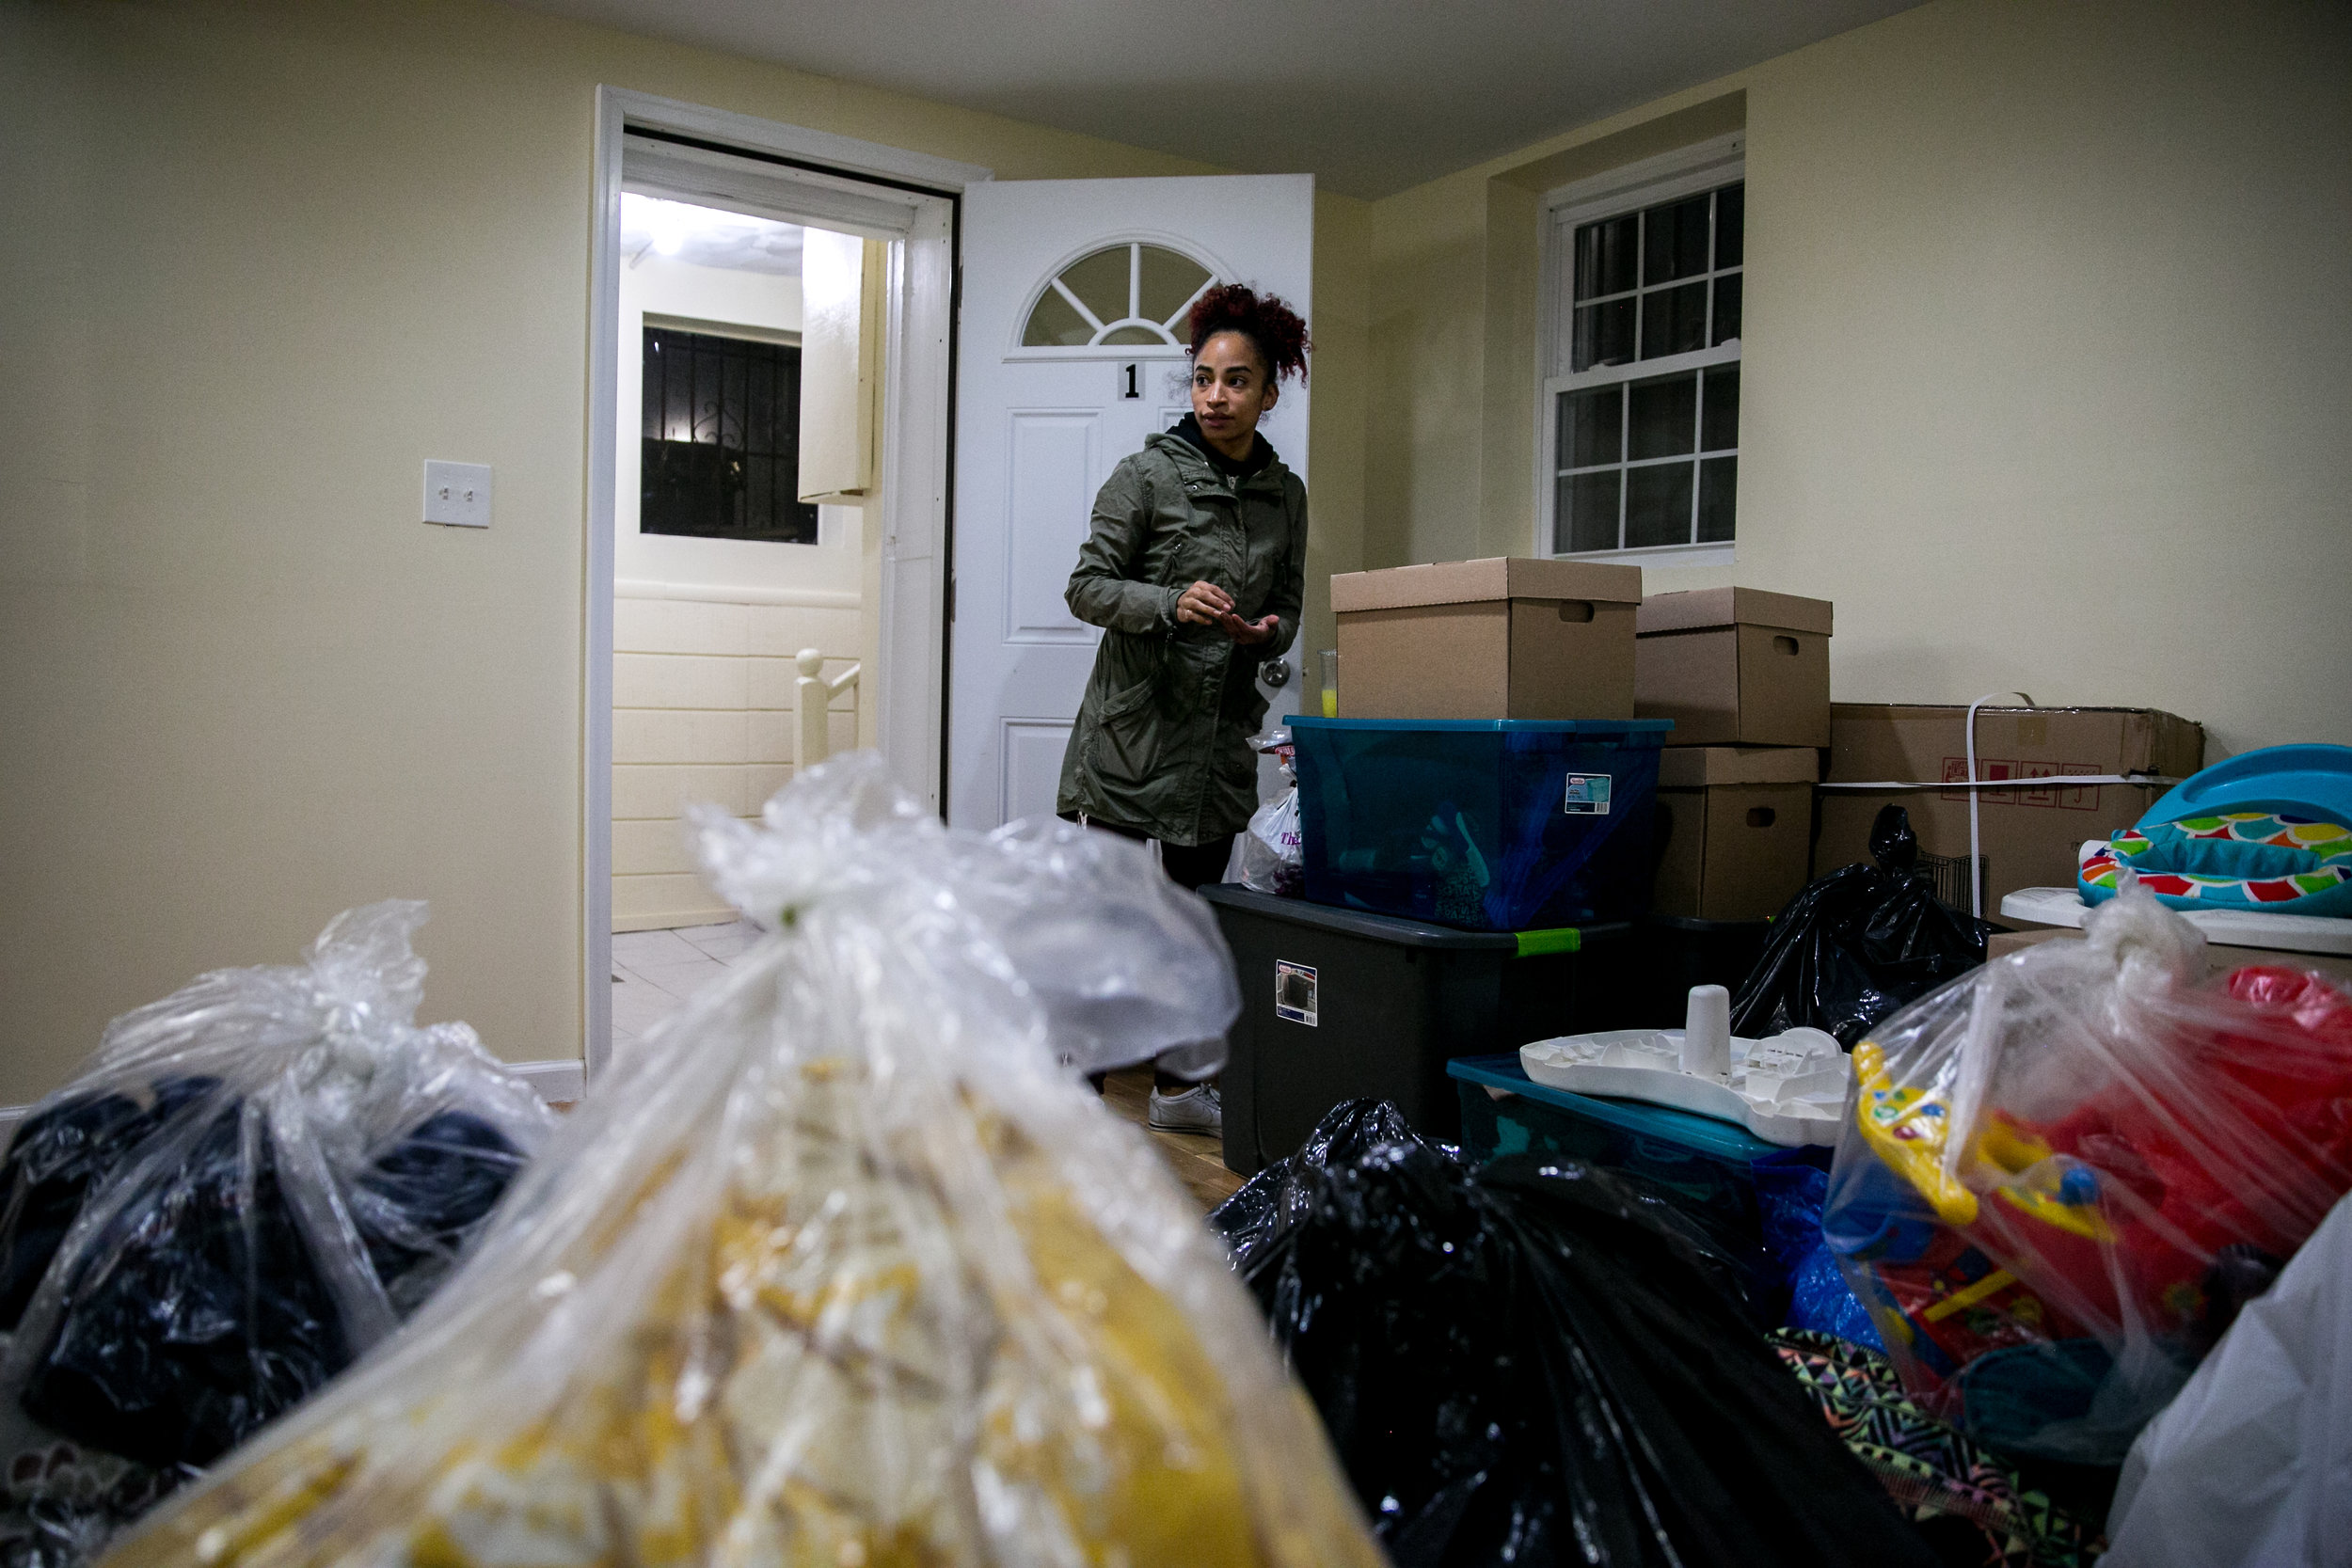 Madelyn Brito stands in her new apartment for the first time with all her belongings in East New York as she moves out of the Kingston Family Residence homeless shelter in Brooklyn, New York.